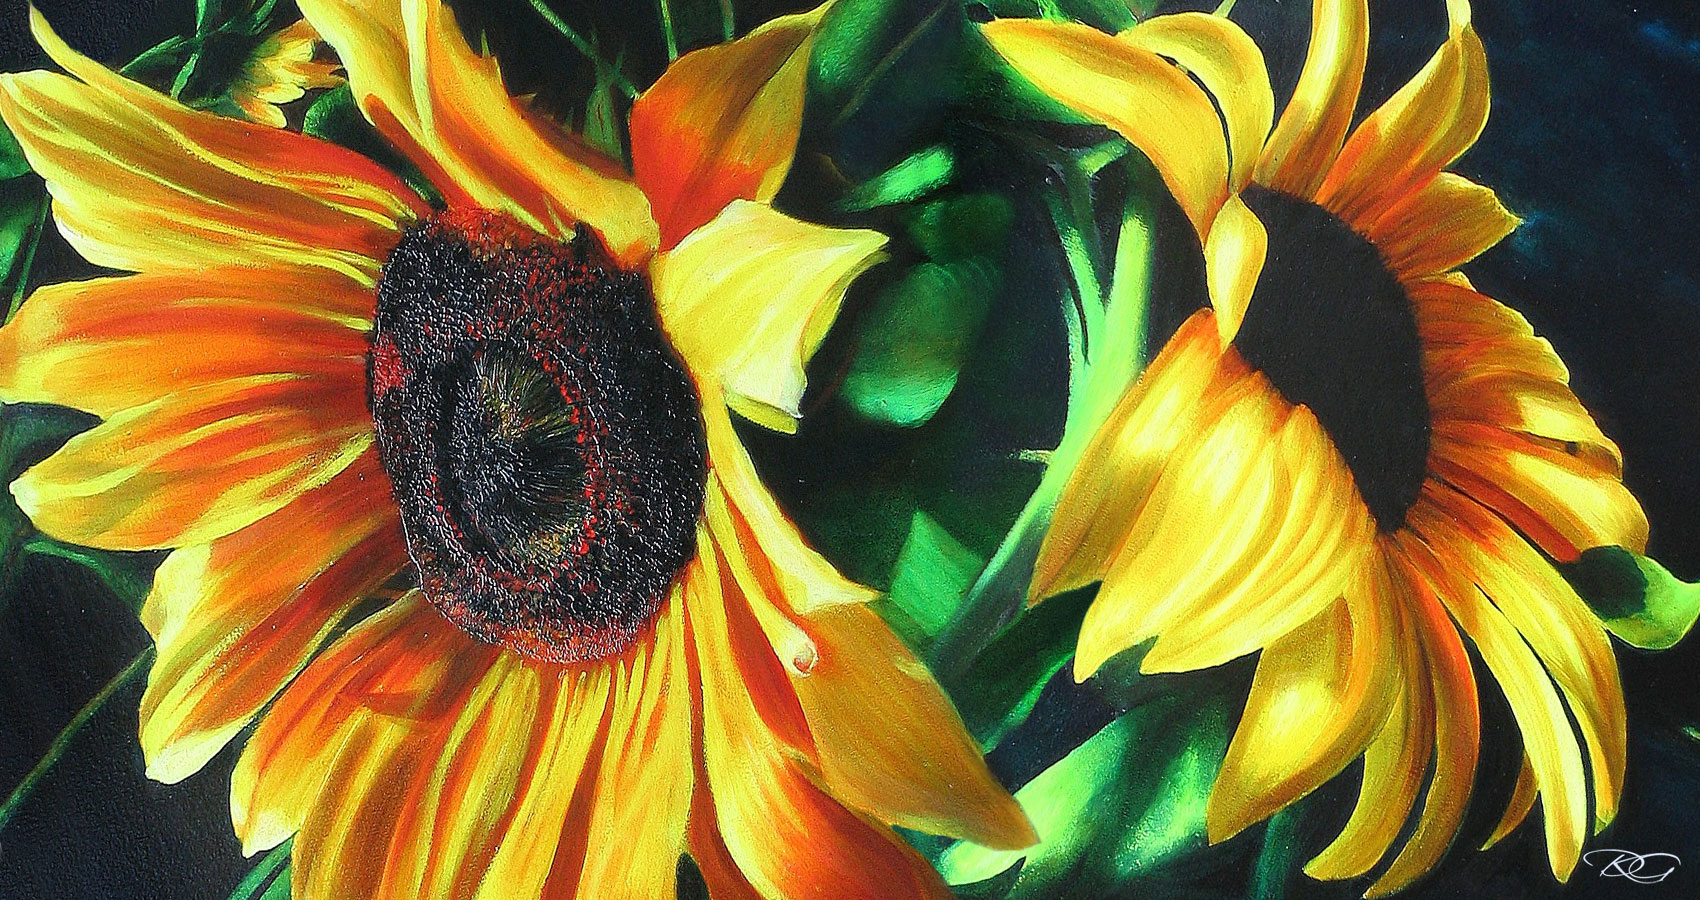 Sunflowers, a poem written by Eliza Segiet at Spillwords.com